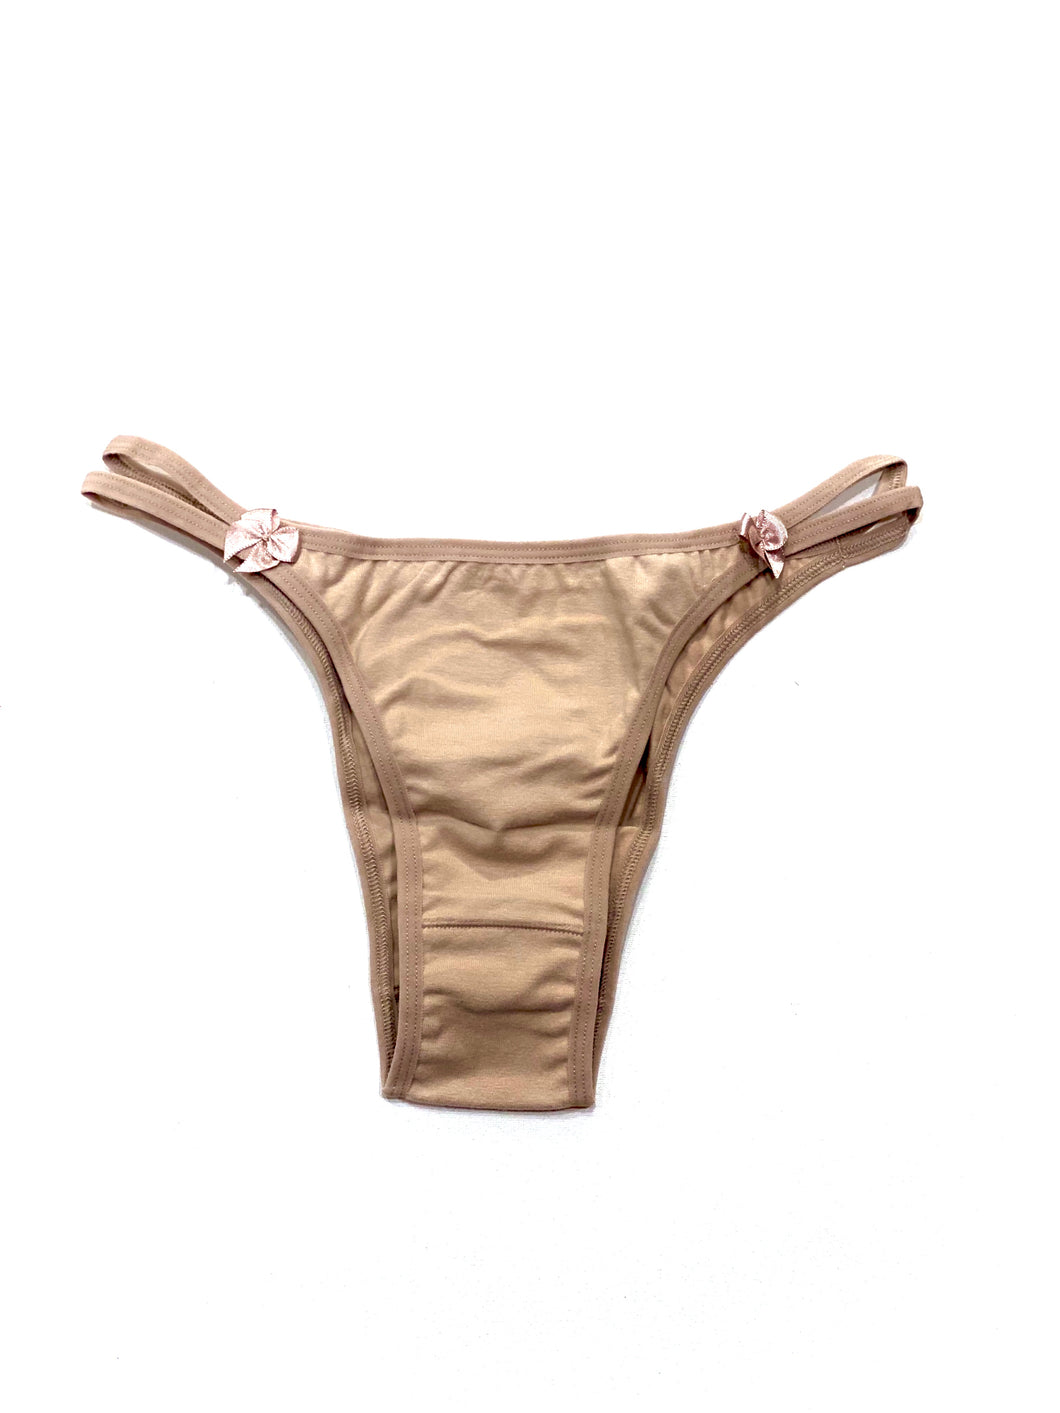 Beige Tanga - Basic cotton with satin bow detail